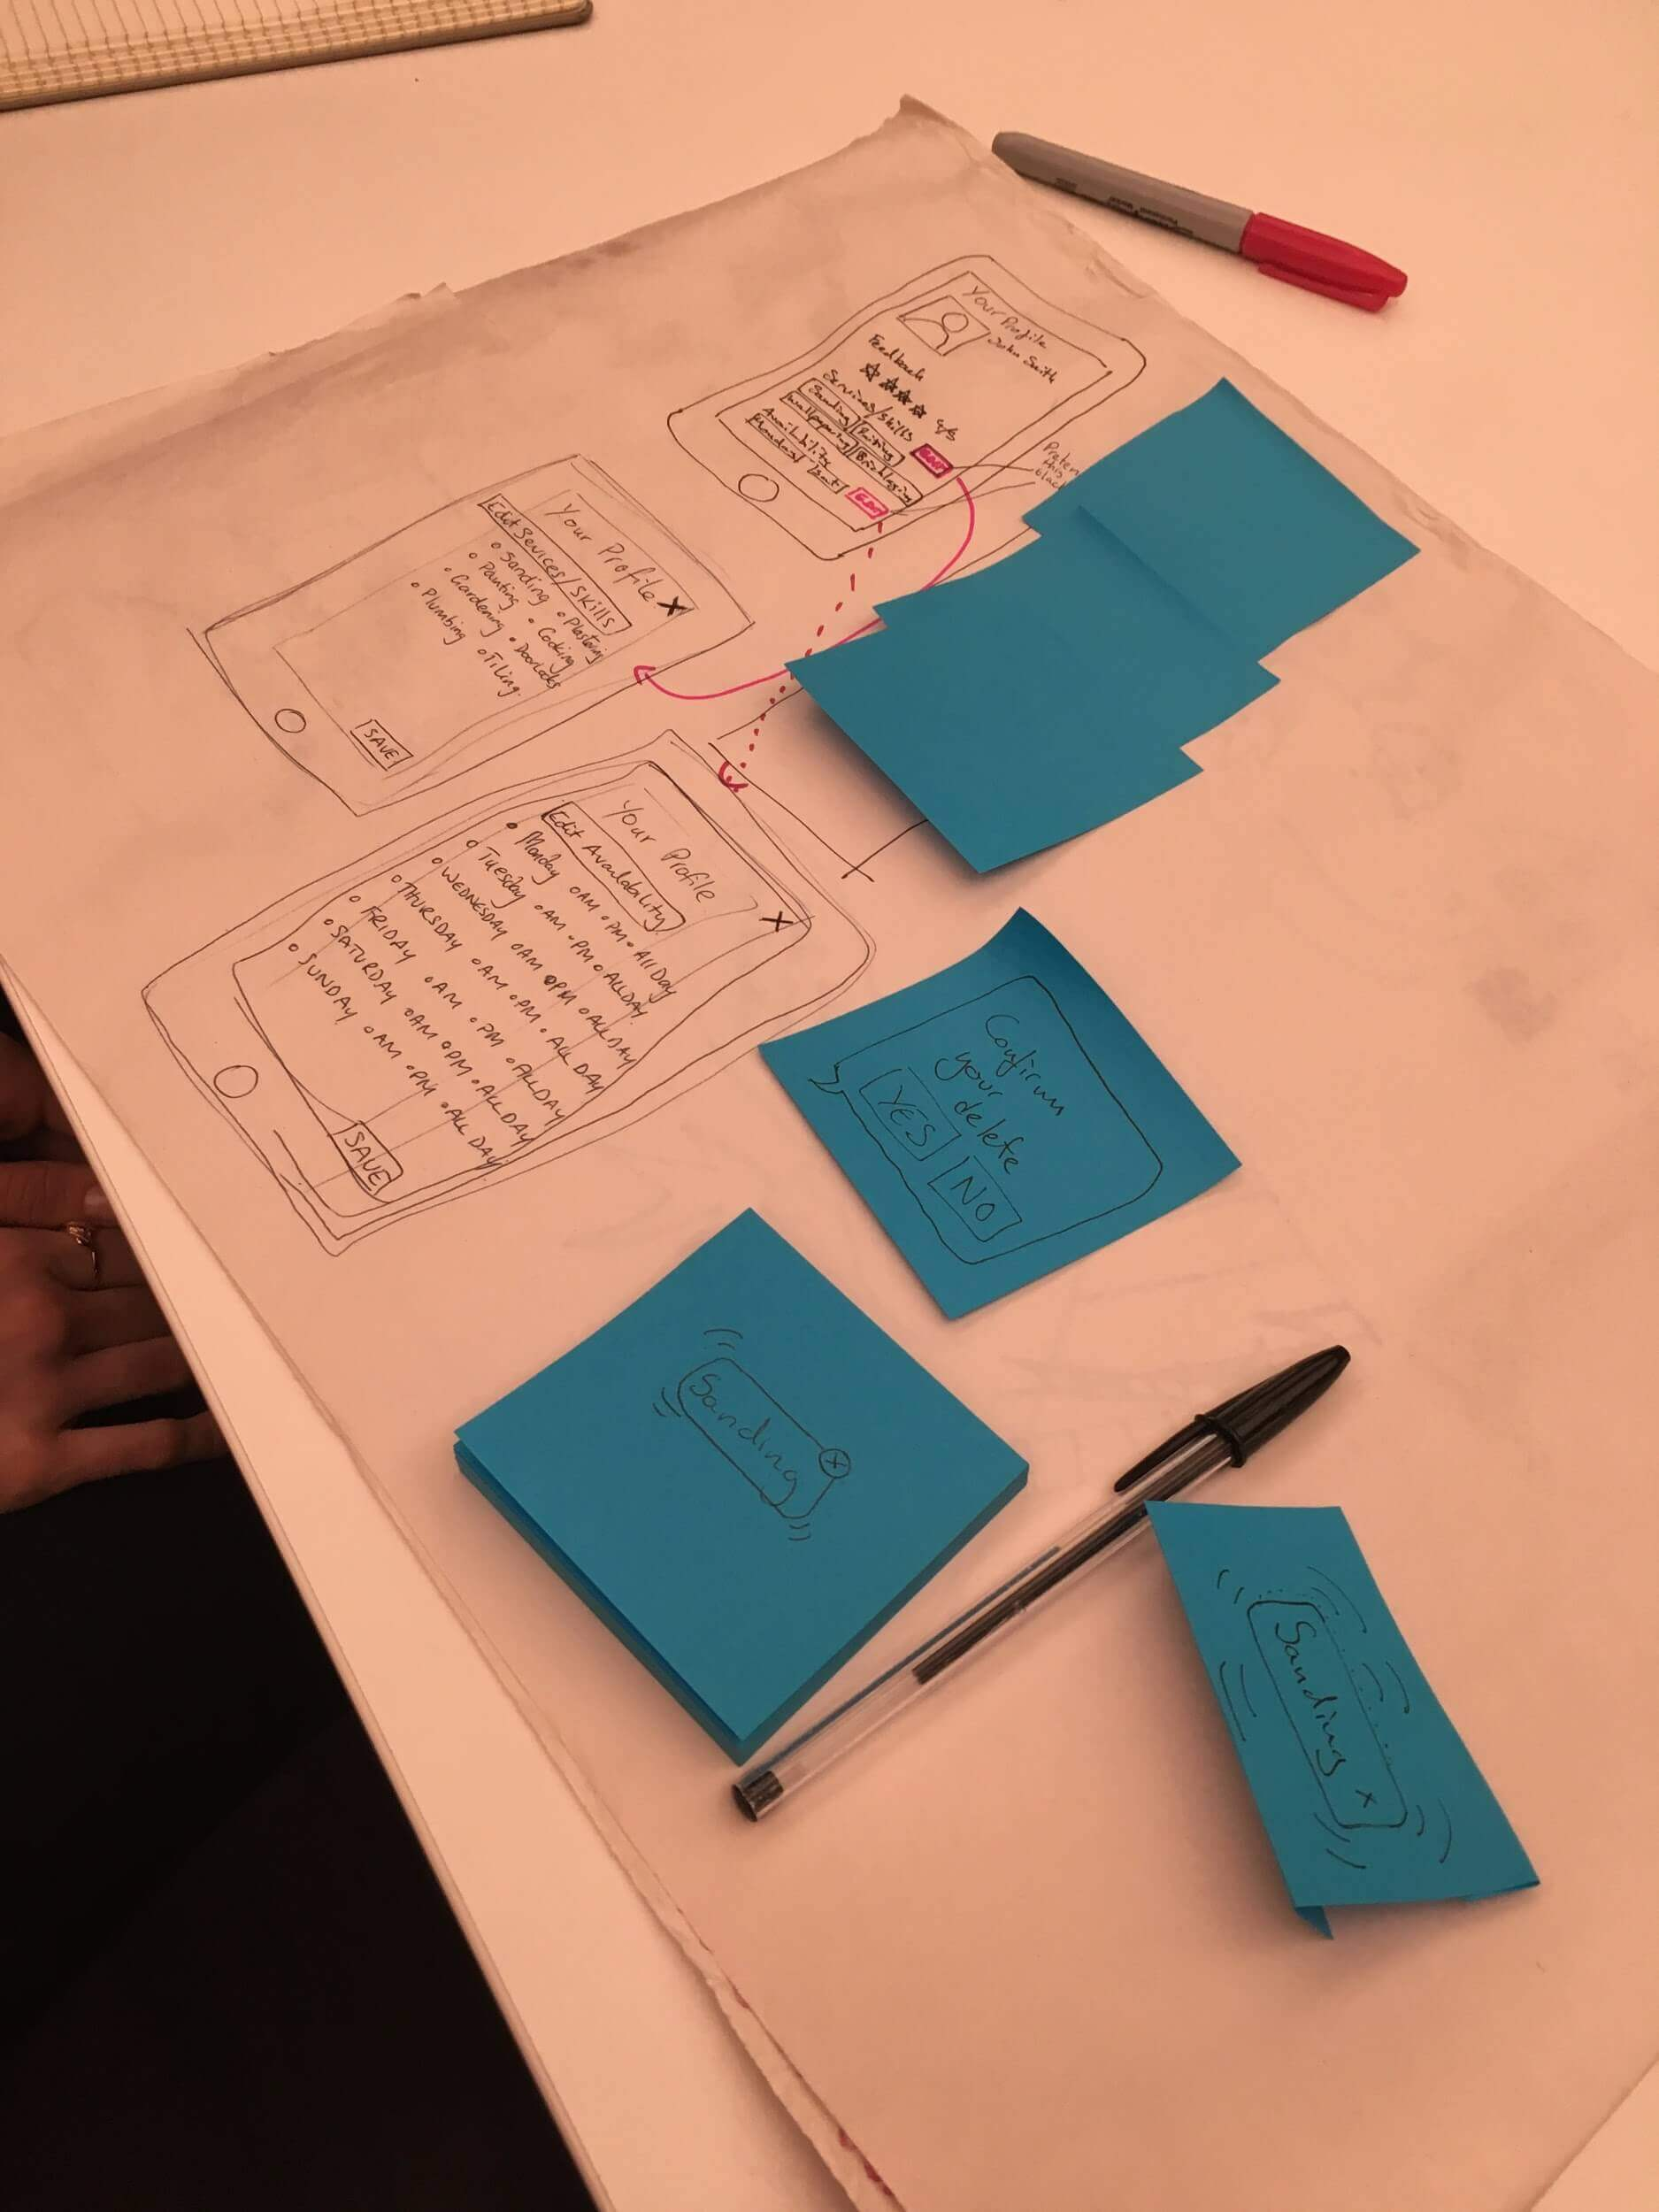 MY 8 WEEK JOURNEY AT UX ACADEMY